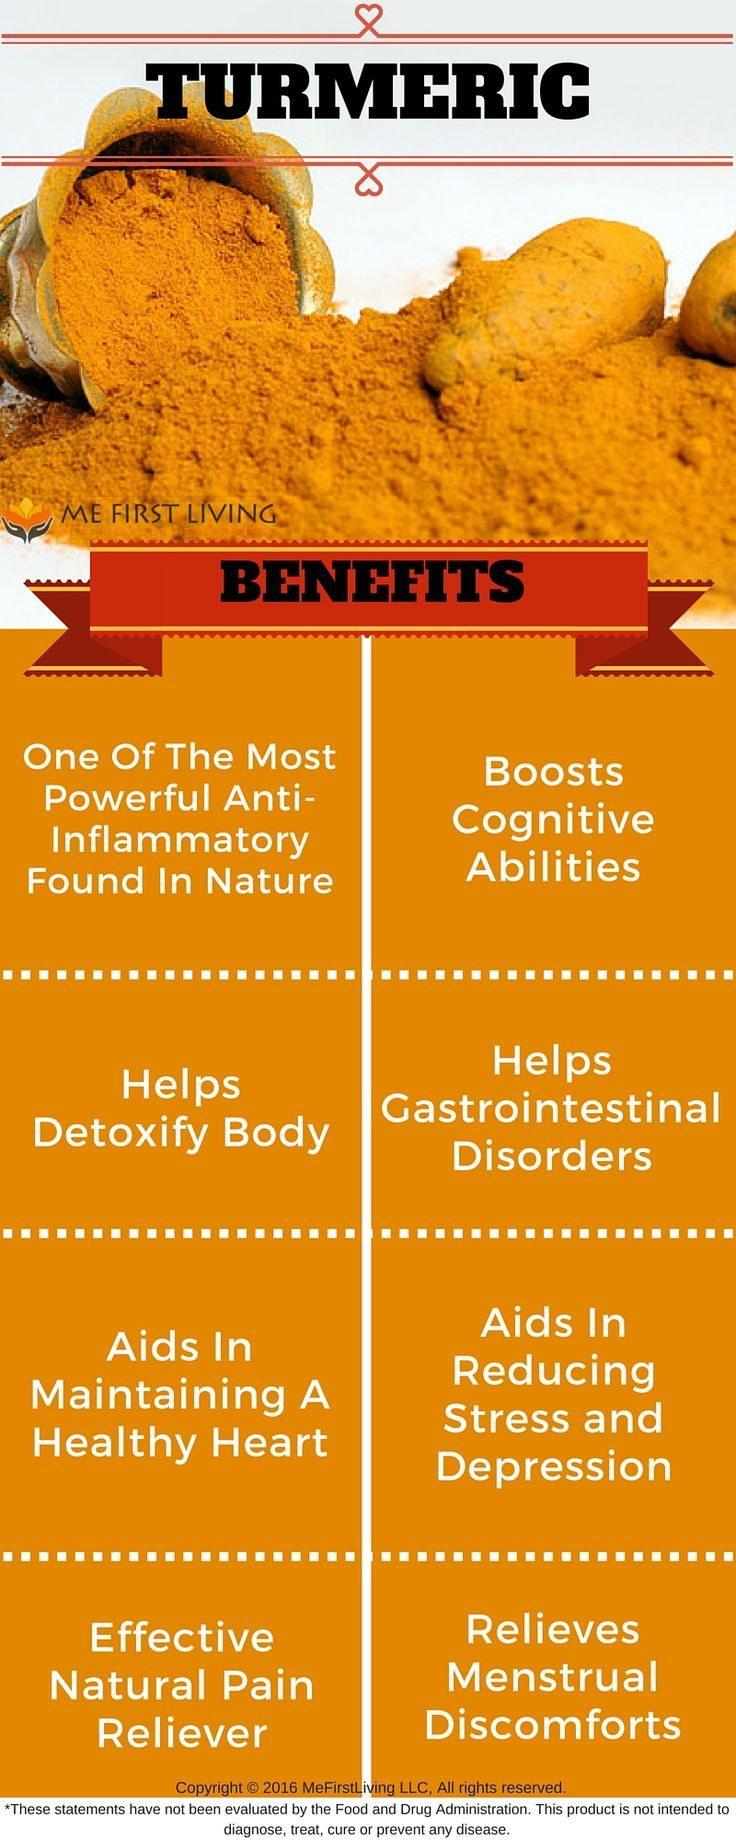 Did You know Turmeric has been known to Boost Cognitive Abilities, Help Detoxify the Body, Aid in reducing stress and depression, help gastrointestinal disorders, Aid in maintaining healthy heart, is one of the most powerful anti-inflammatory found in nature, is an Effective natural pain reliever, and Relieve menstrual discomforts